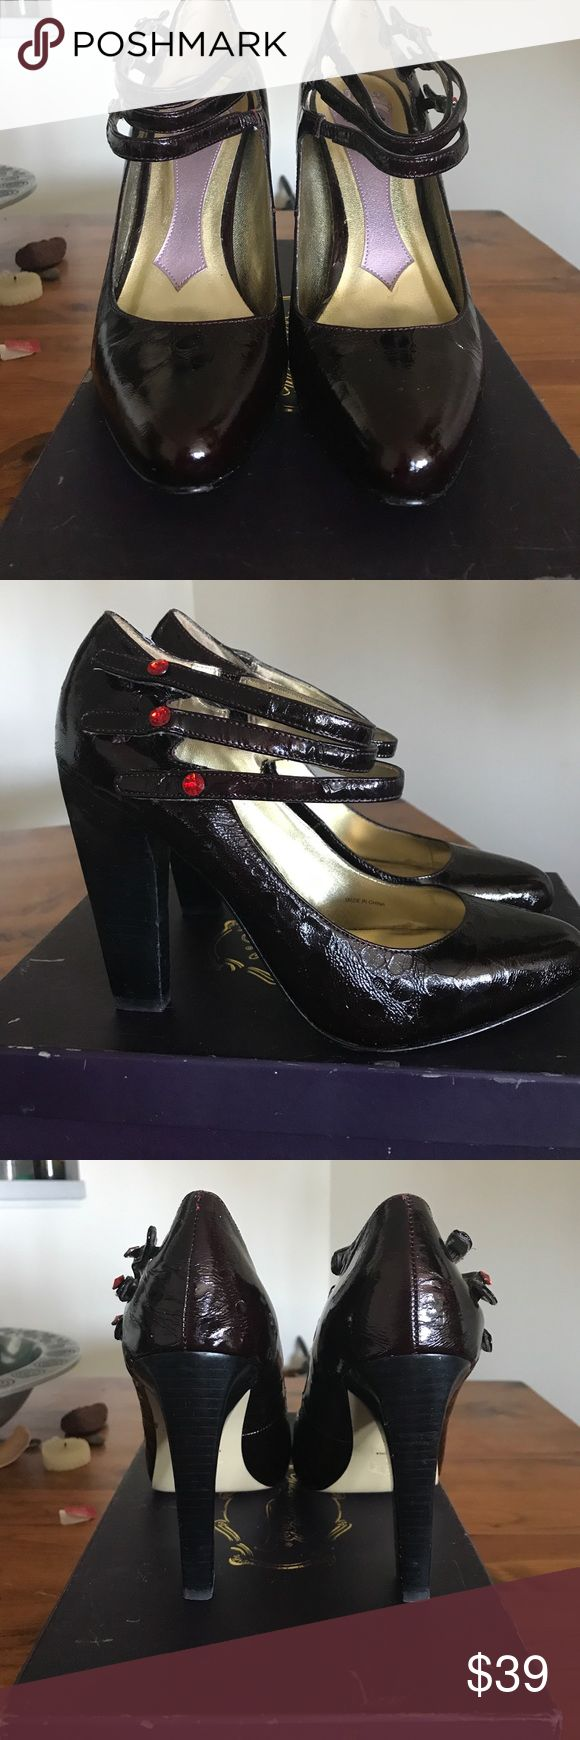 Hale Bob patent leather shoes size 9 A classic heel with a twist. The red studs on the three straps make this shoe a unique classic in a dark reddish color! The high heel adds just enough flair to make this shoe appropriate for day and night! Excellent condition! Hale Bob Shoes Heels